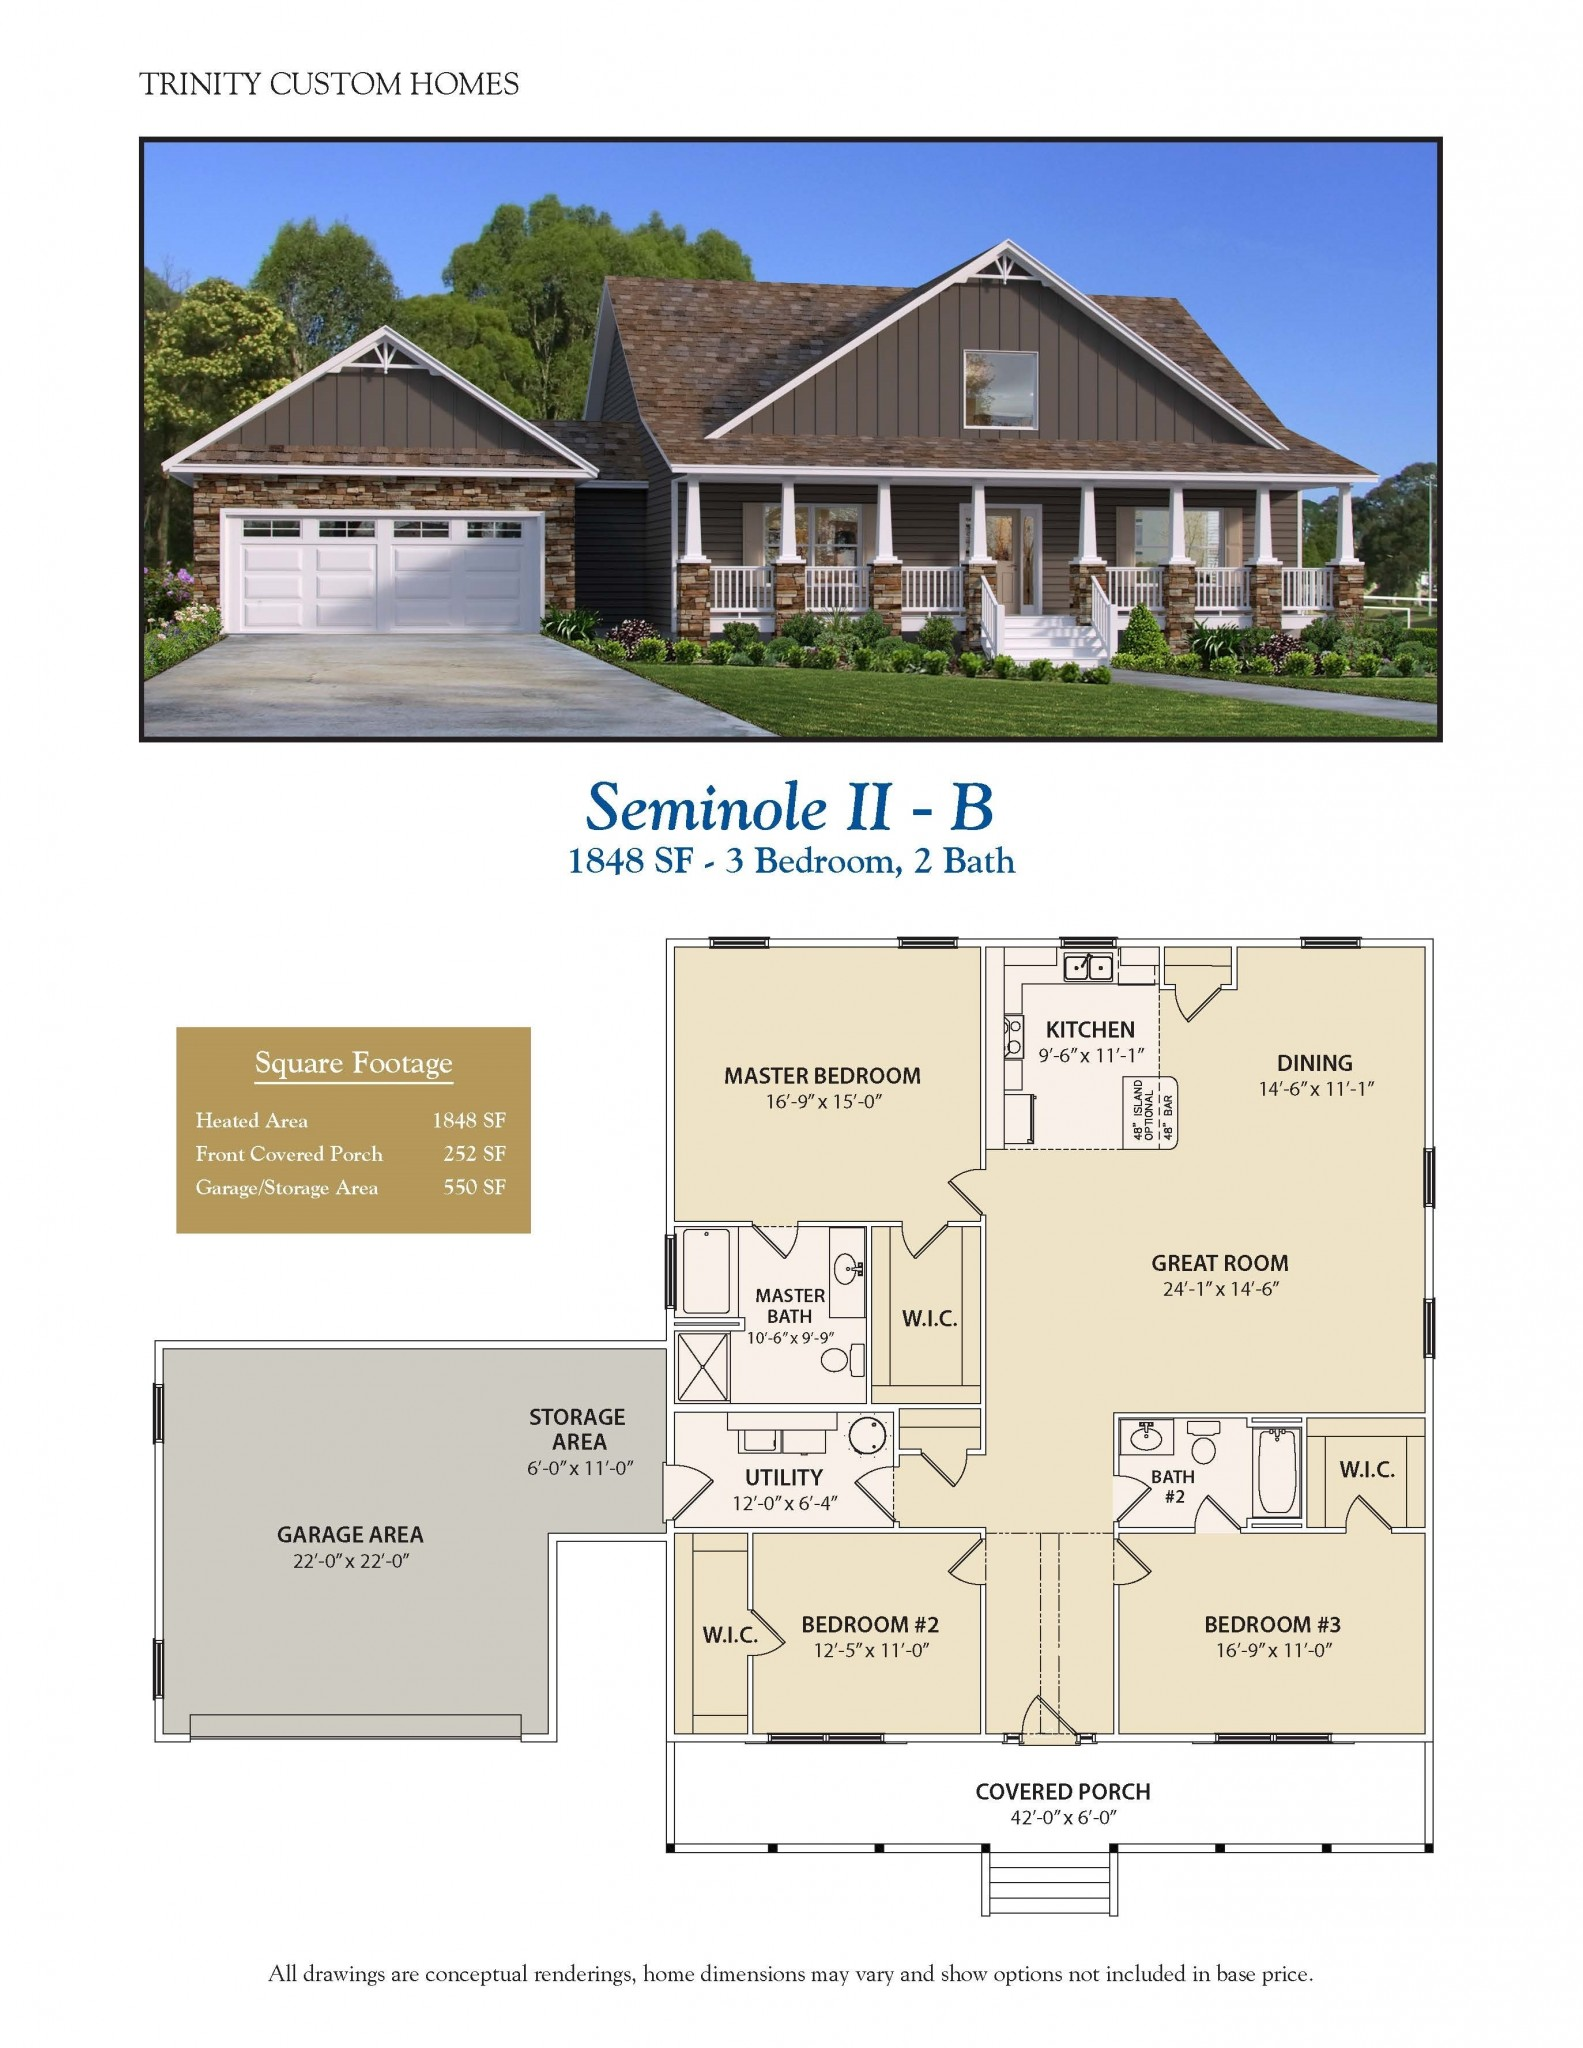 Seminole ii b welcome to trinity custom homes for Trinity house plans